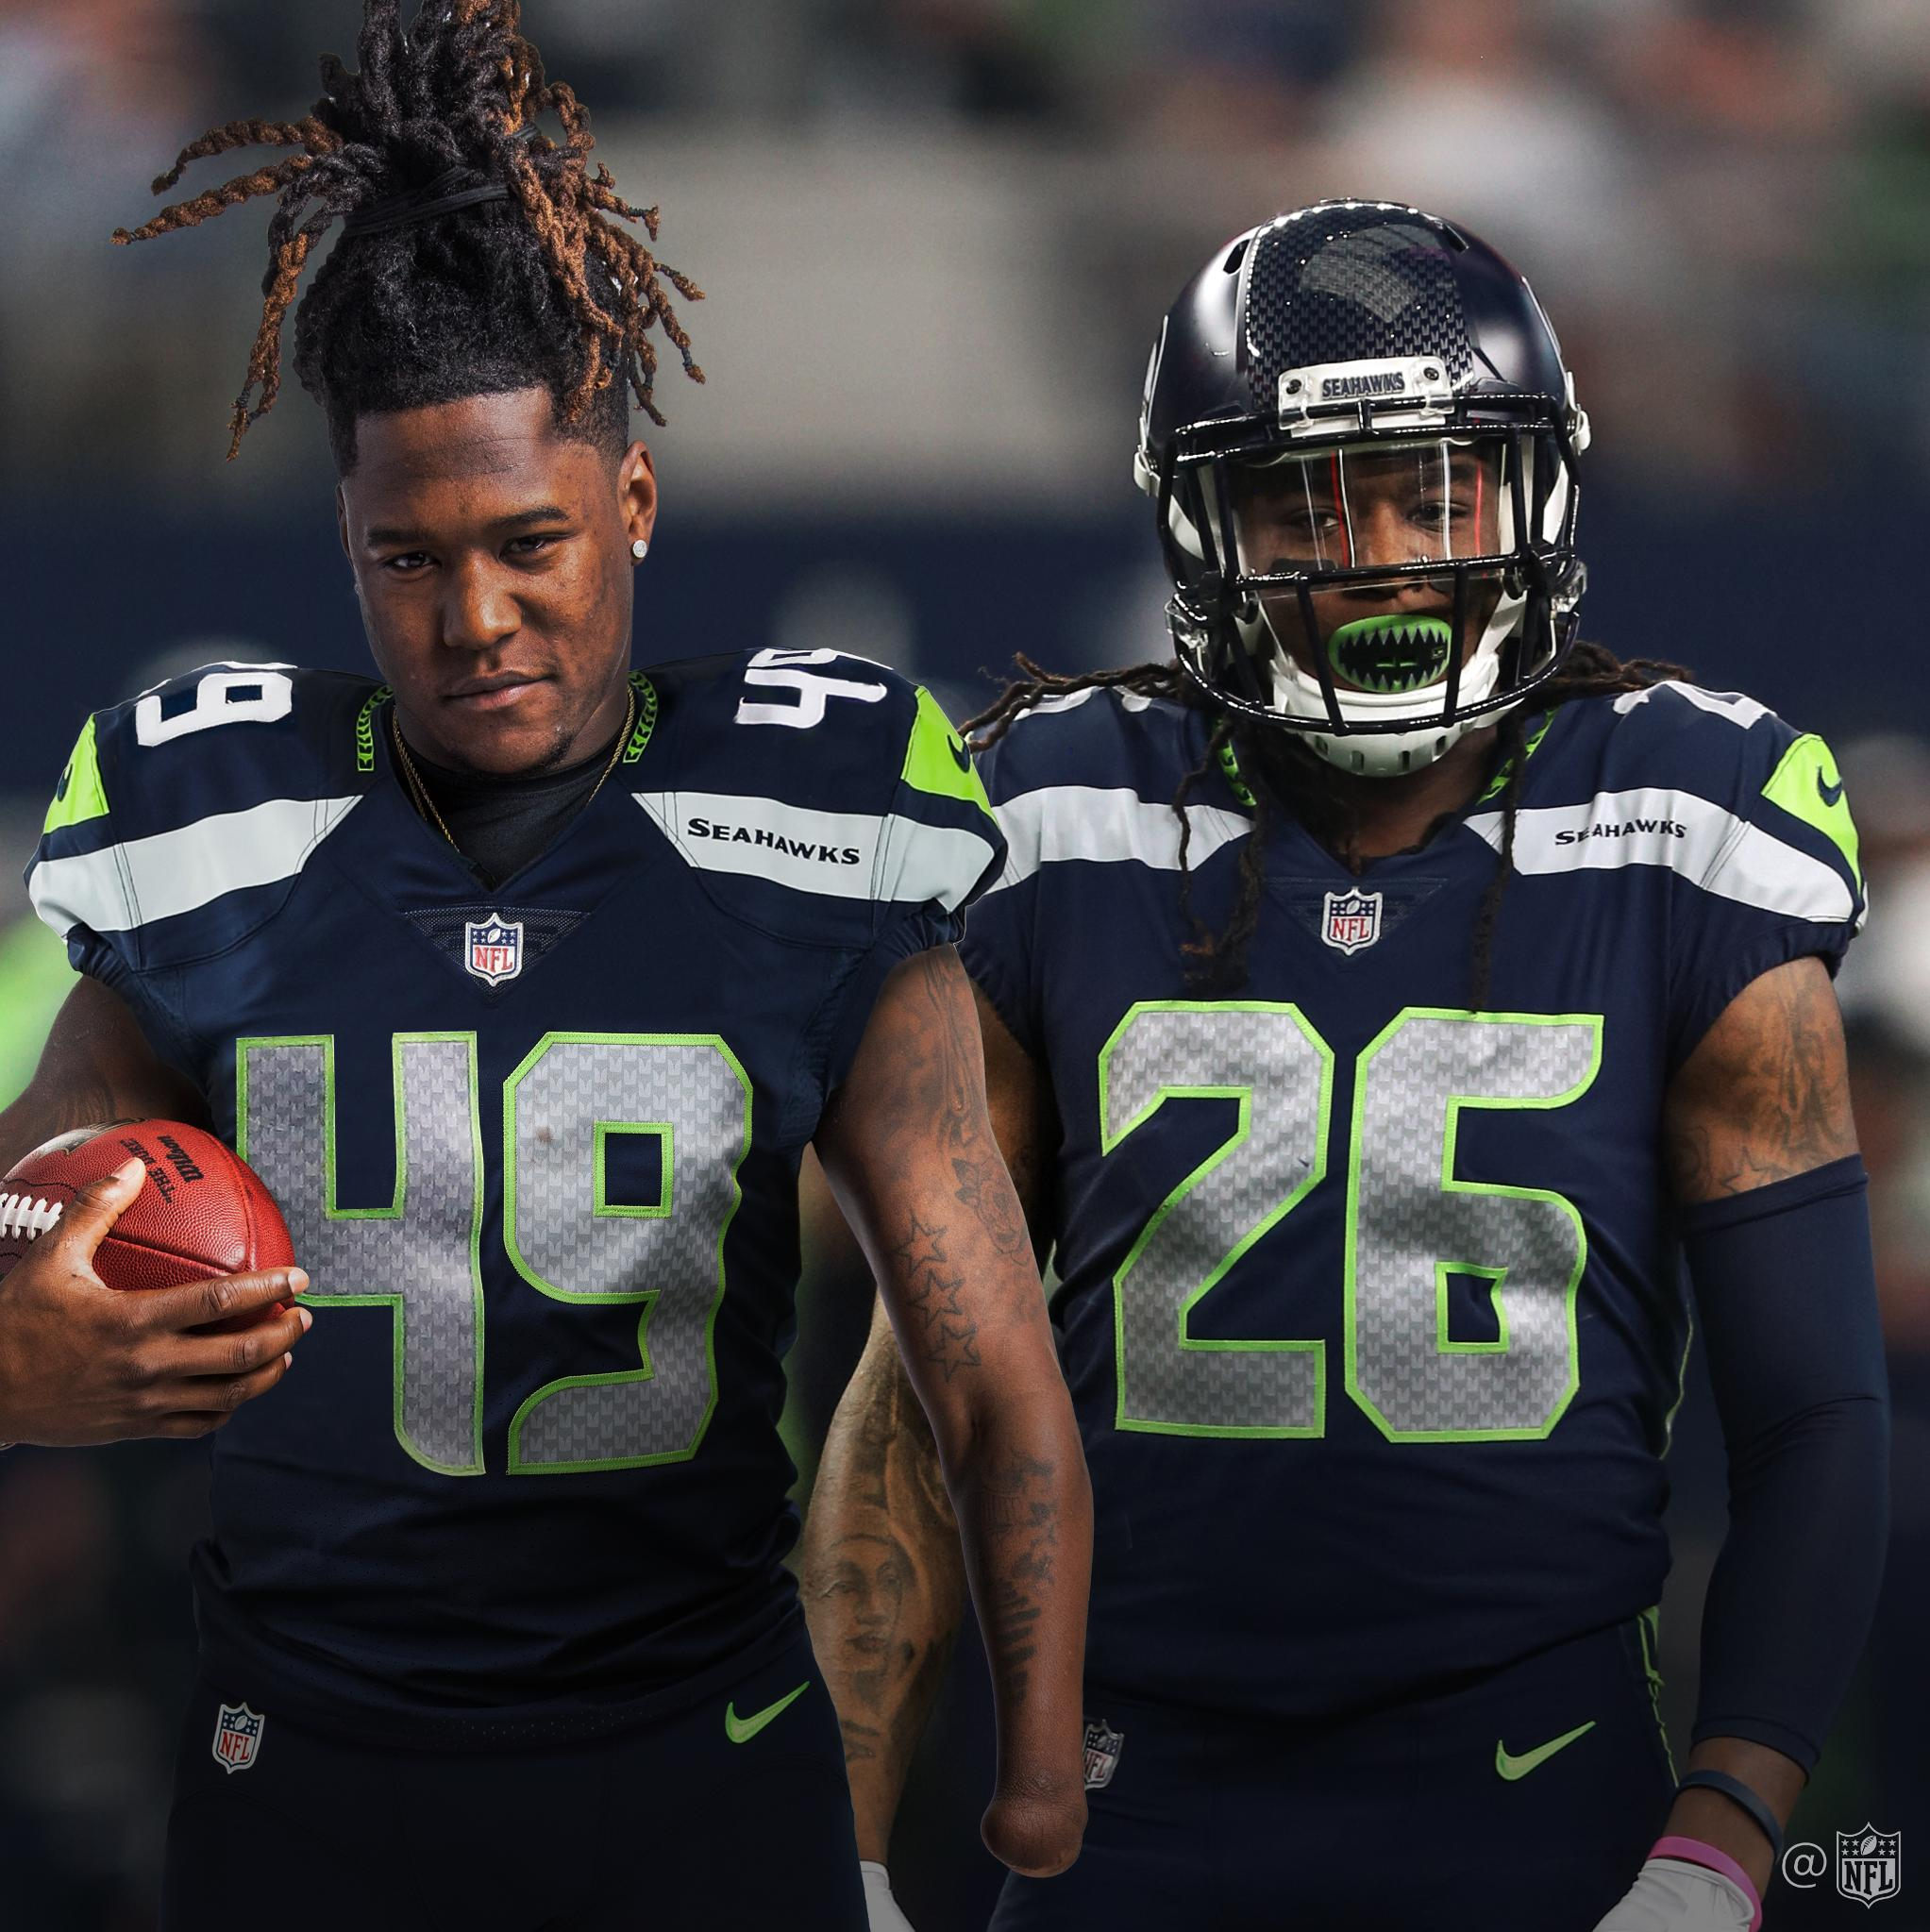 HAPPY BIRTHDAY to @Seahawks teammates and twins @ShaquillG and @Shaquemgriffin! ������ https://t.co/efJQ0nTz5o